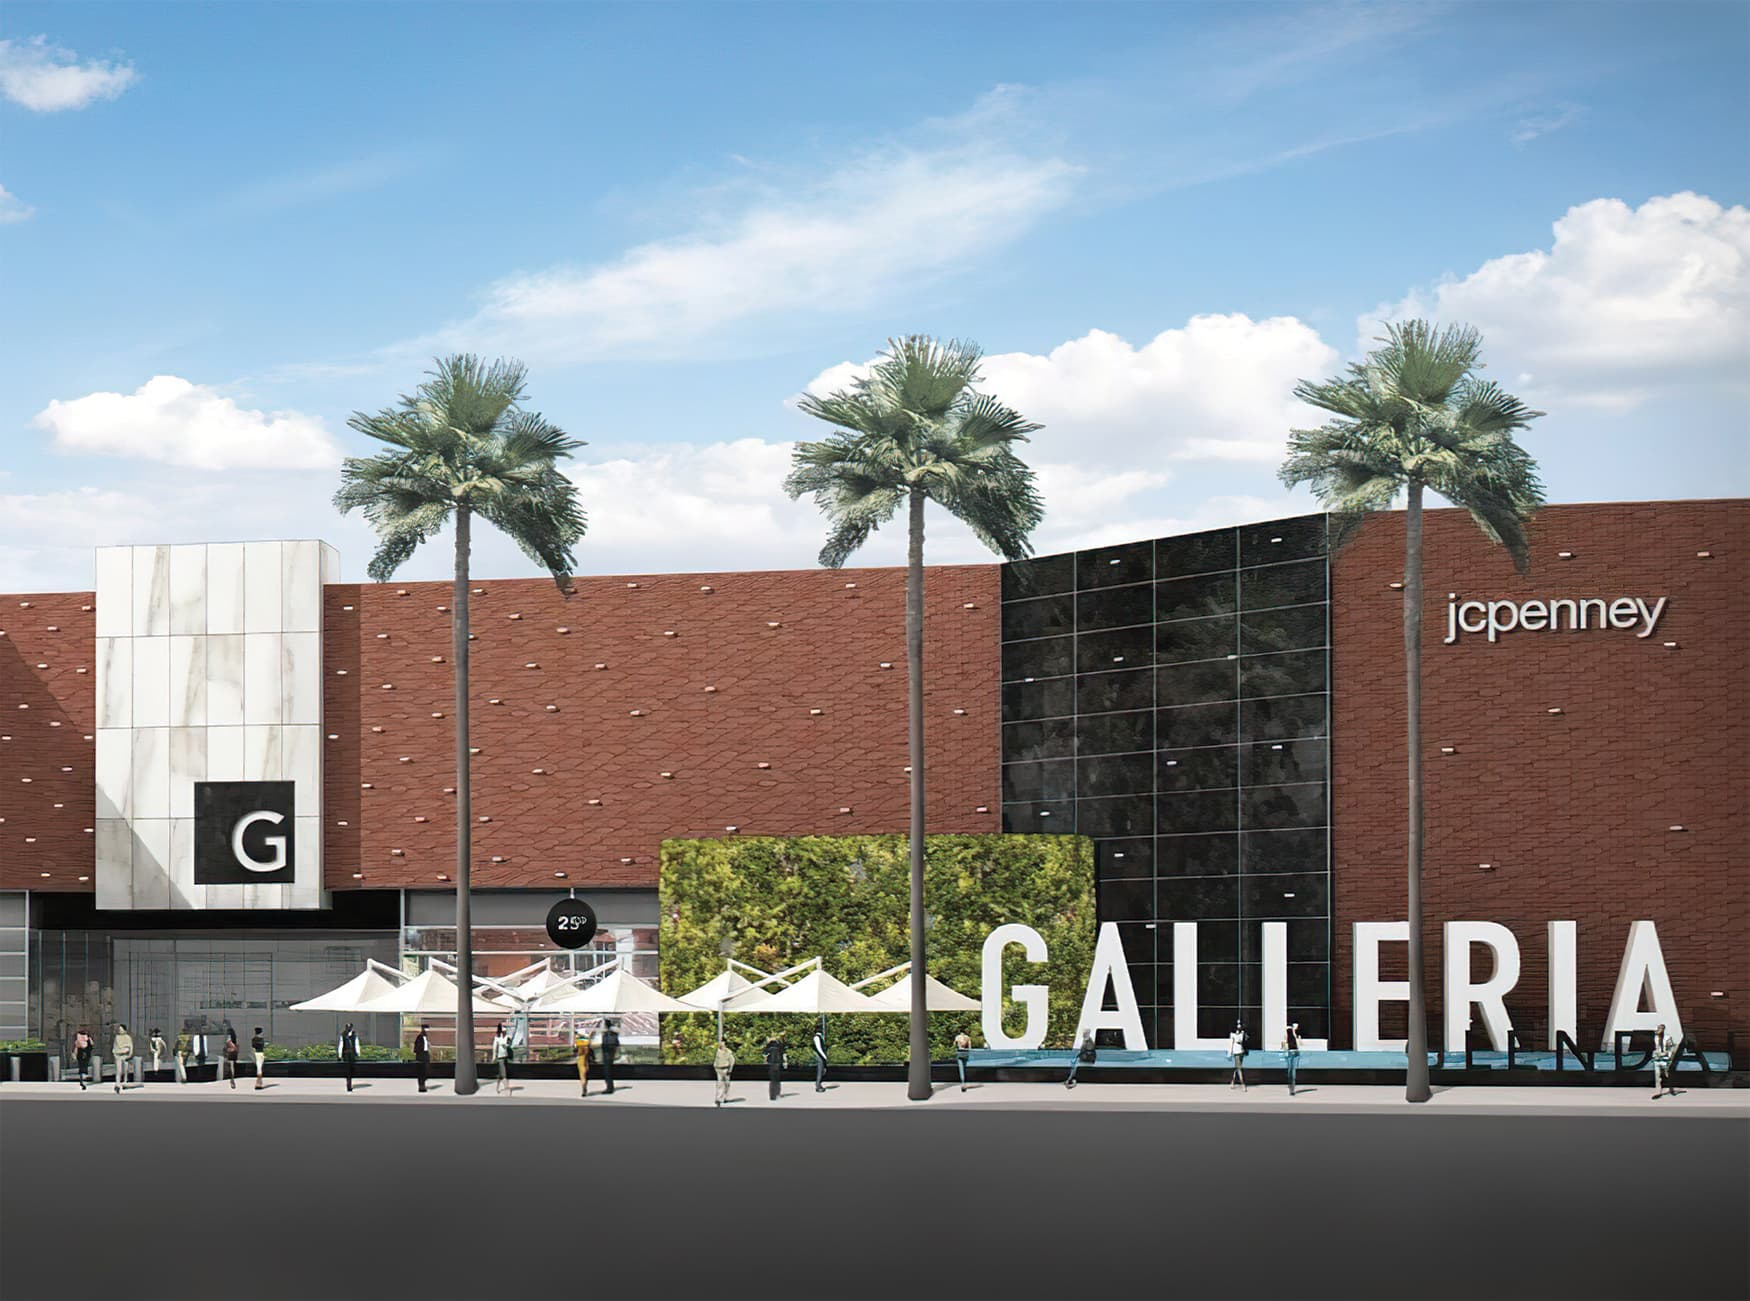 Glendale Galleria. A retail destination in Glendale, California. Project Facade Identity Signage and Sculptural Identity.